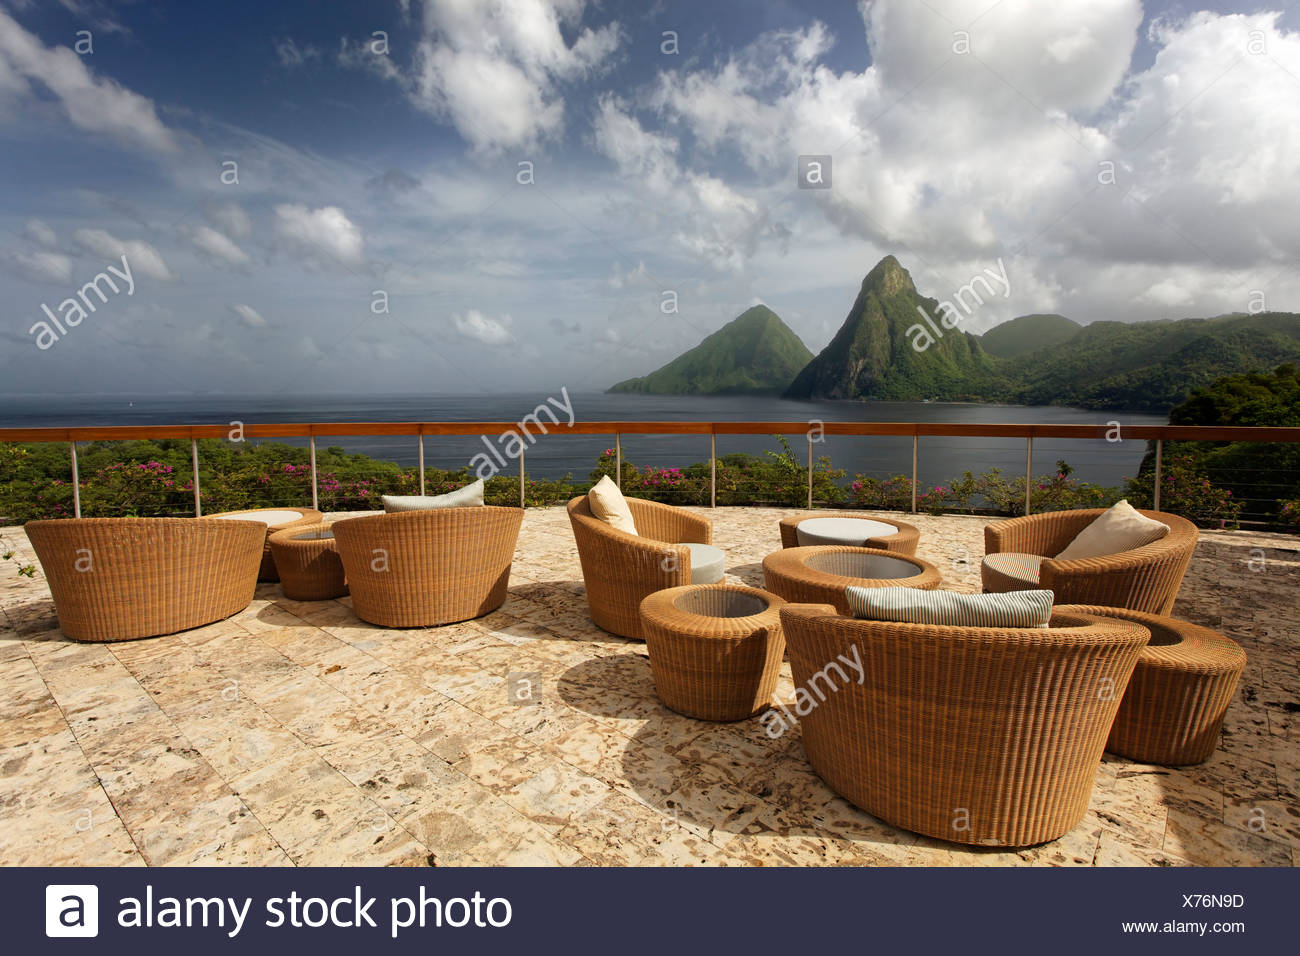 Roof terrace, Dedon, furniture, natural stone floor, hemisphere, Pitons mountains, Jade Mountain luxury hotel, Saint Lucia - Stock Image